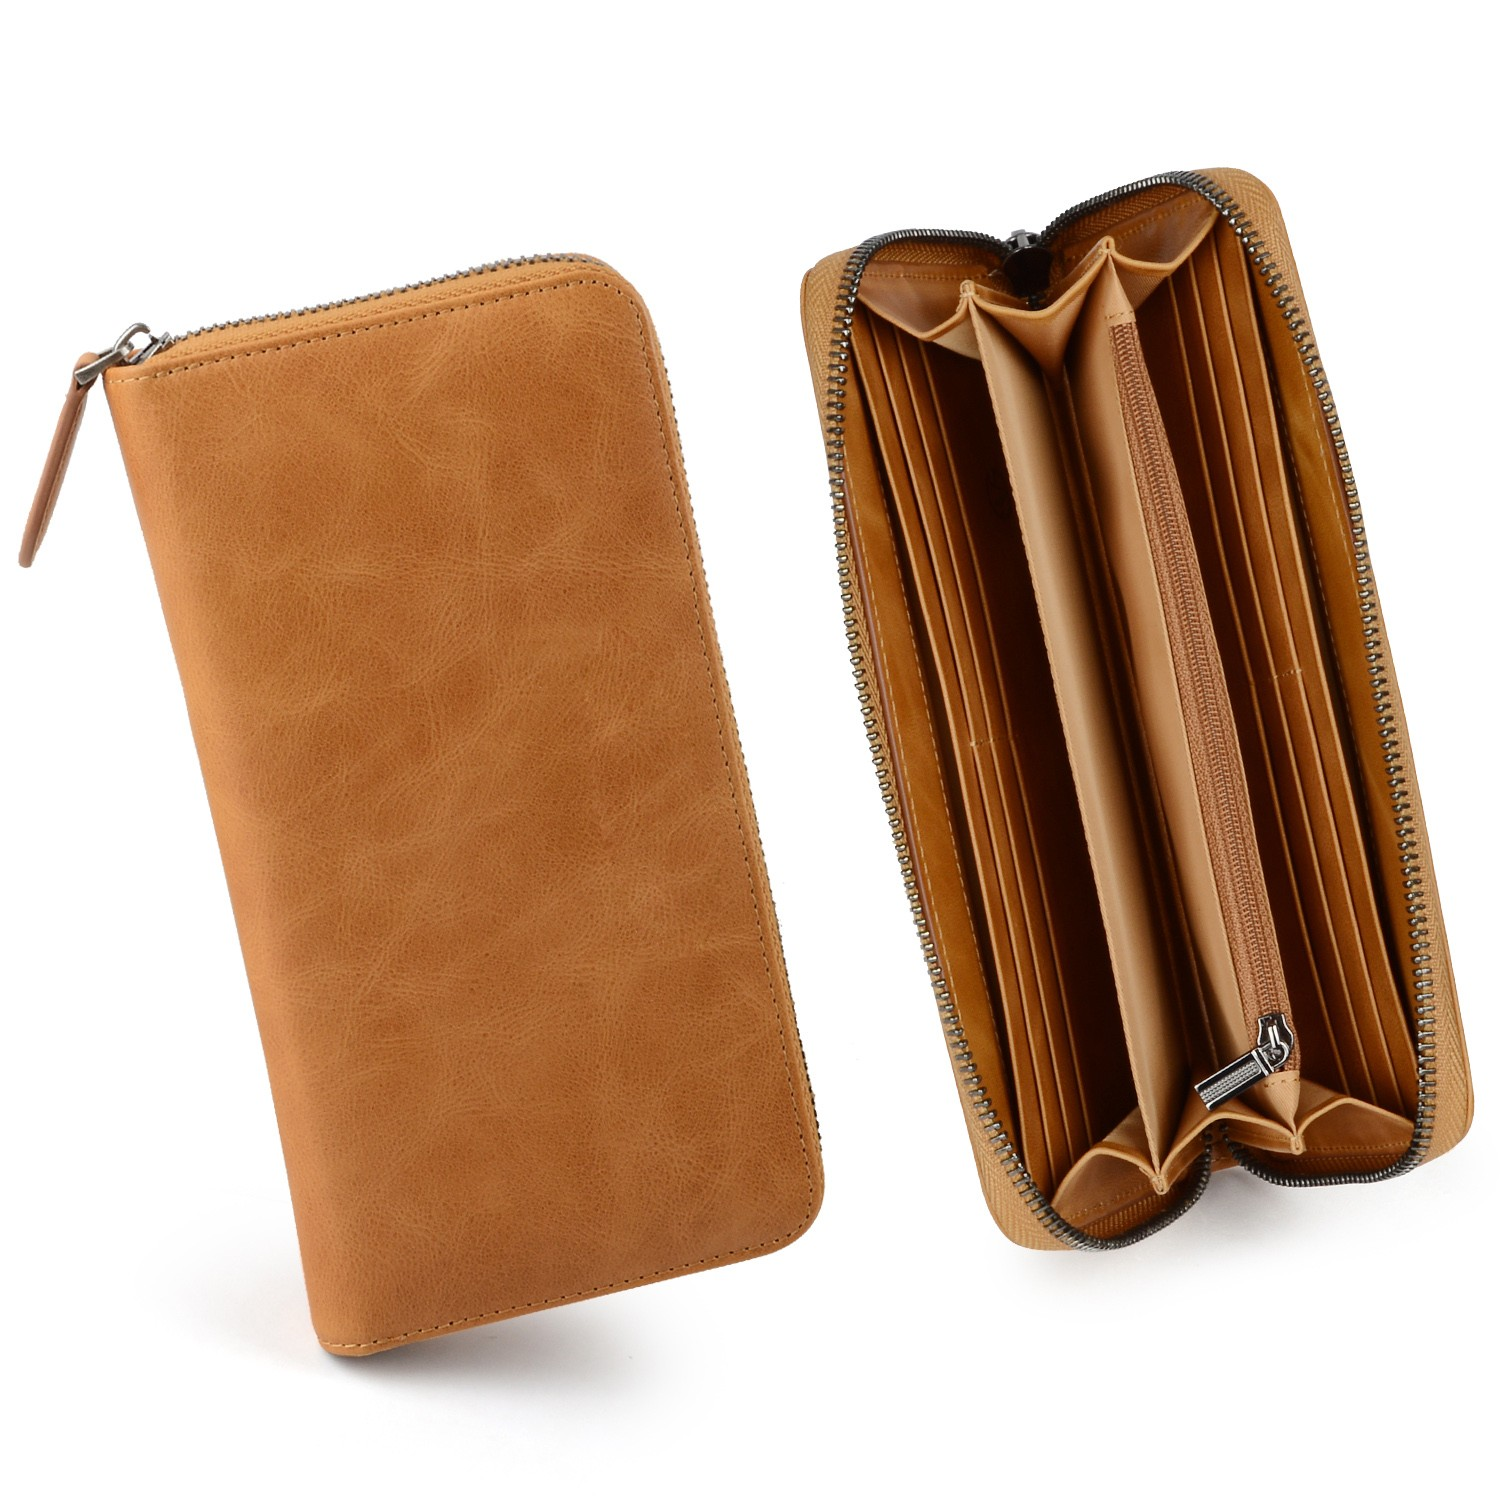 AIVI mens leather wallet with coin pocket online for ipone 6/6plus-8